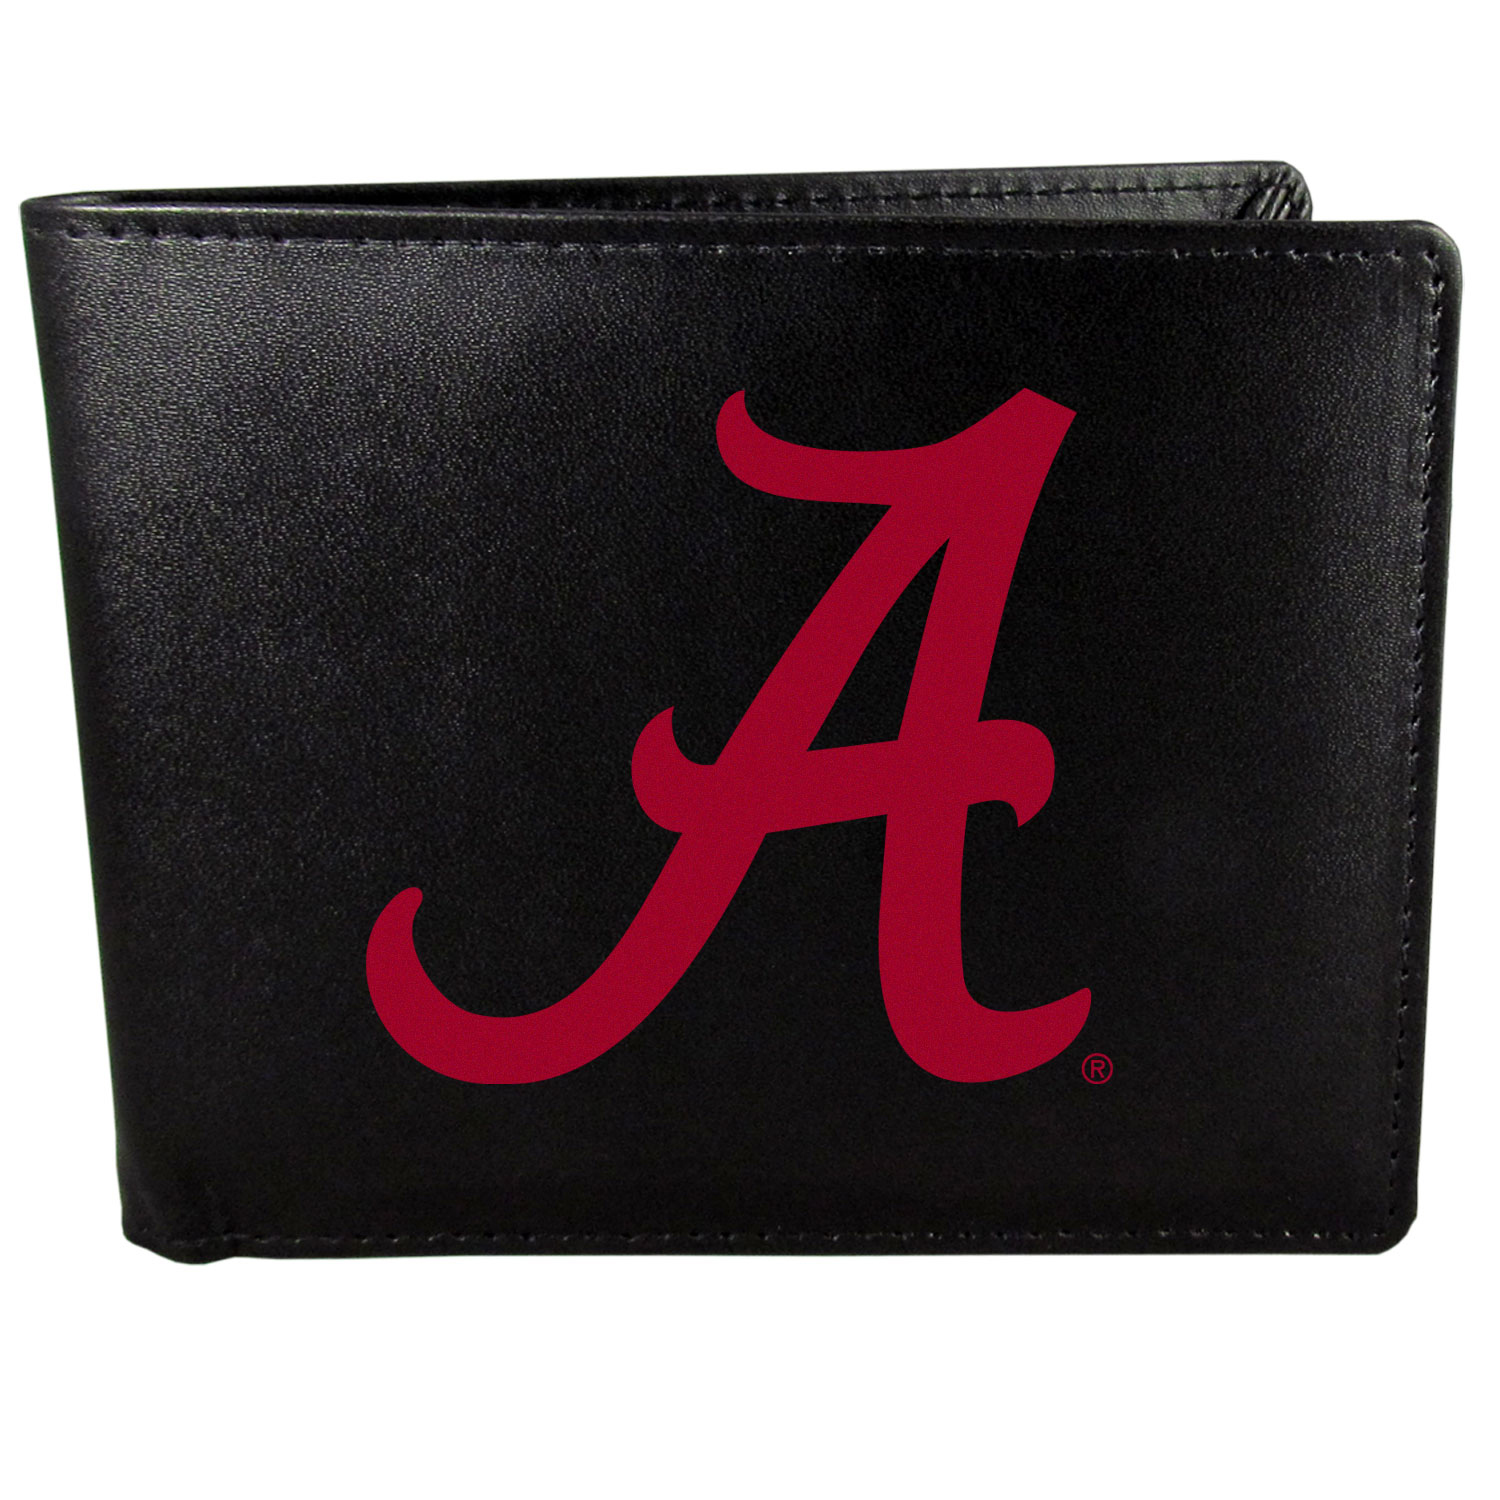 Alabama Crimson Tide Leather Bi-fold Wallet, Large Logo - Our classic fine leather bi-fold wallet is meticulously crafted with genuine leather that will age beautifully so you will have a quality wallet for years to come. The wallet opens to a large, billfold pocket and numerous credit card slots and has a convenient windowed ID slot. The front of the wallet features an extra large Alabama Crimson Tide printed logo.